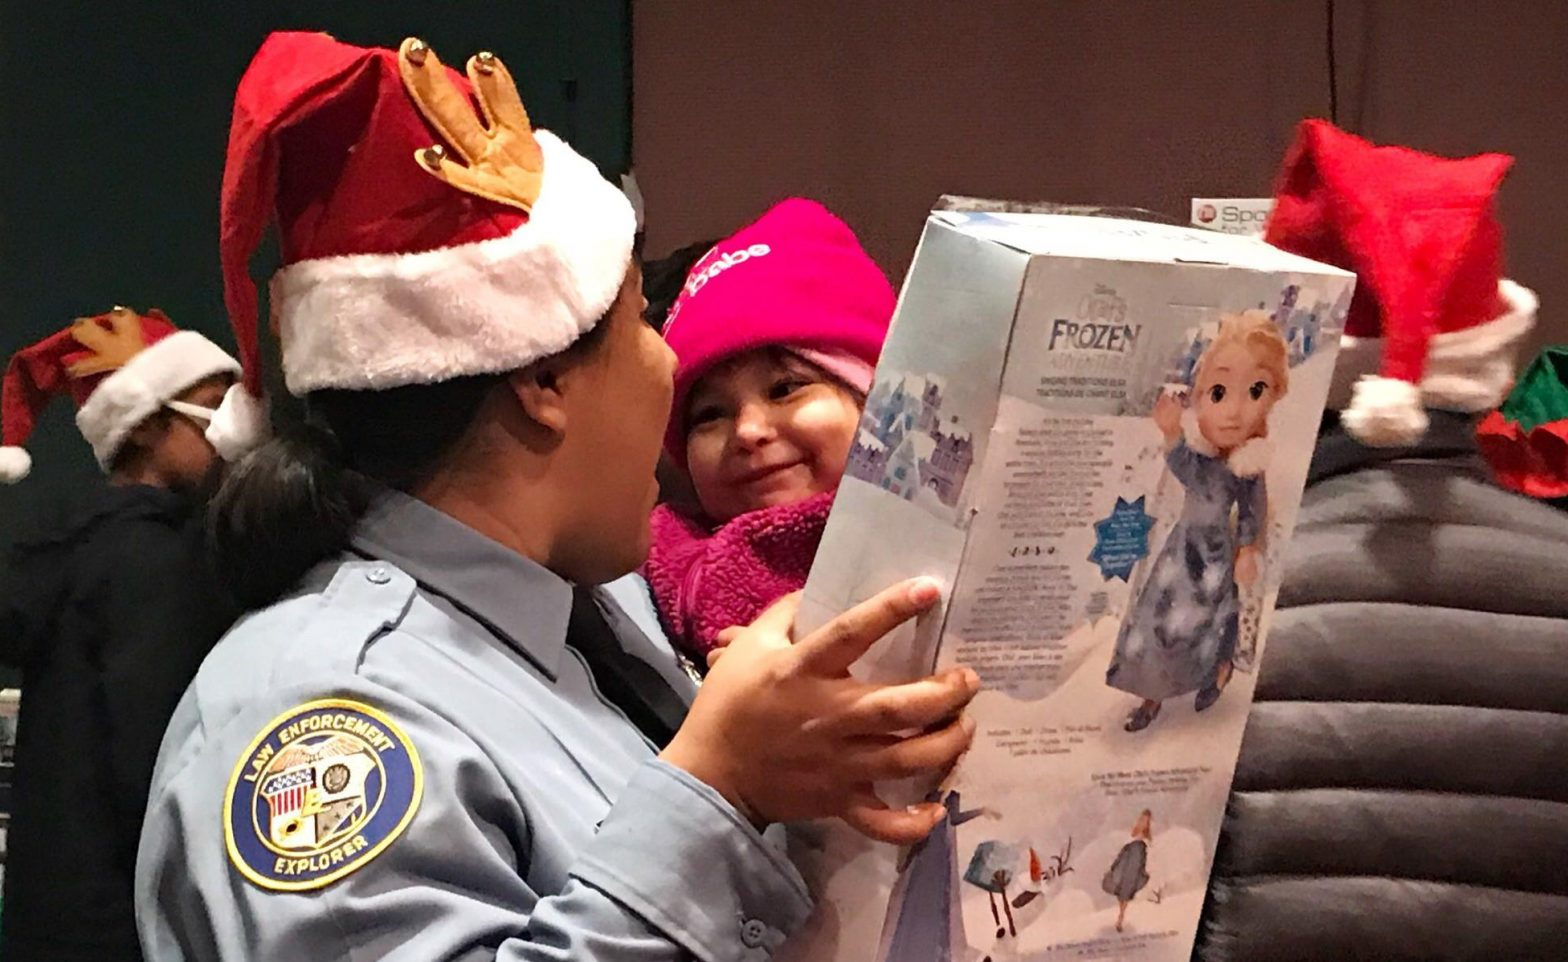 A police officer in a Santa hat sharing a toy with a child